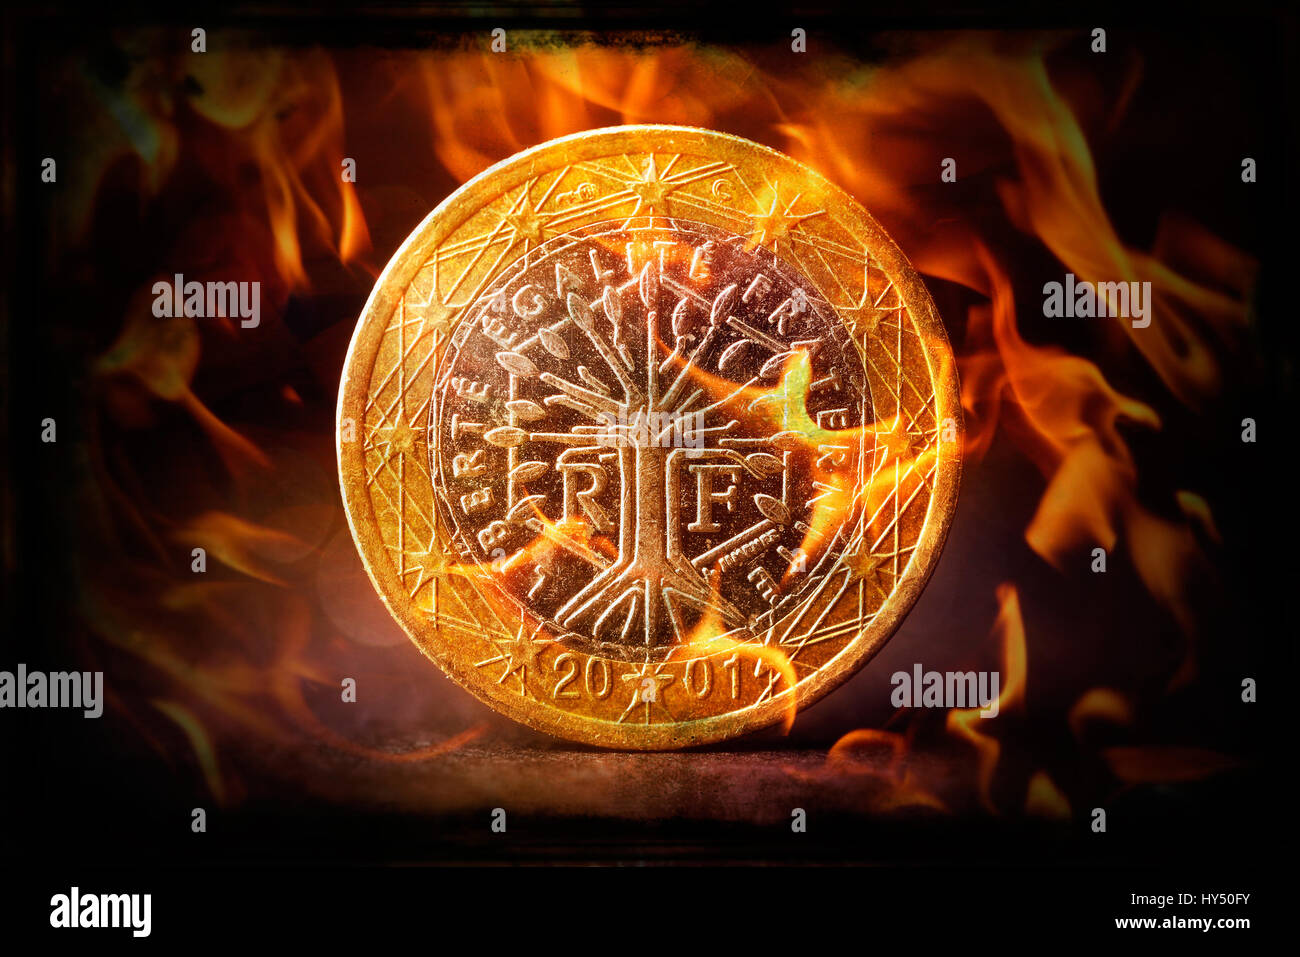 French euro-coin one in flames, eurocrisis, Franzoesische Ein-Euro-Muenze in Flammen, Eurokrise - Stock Image